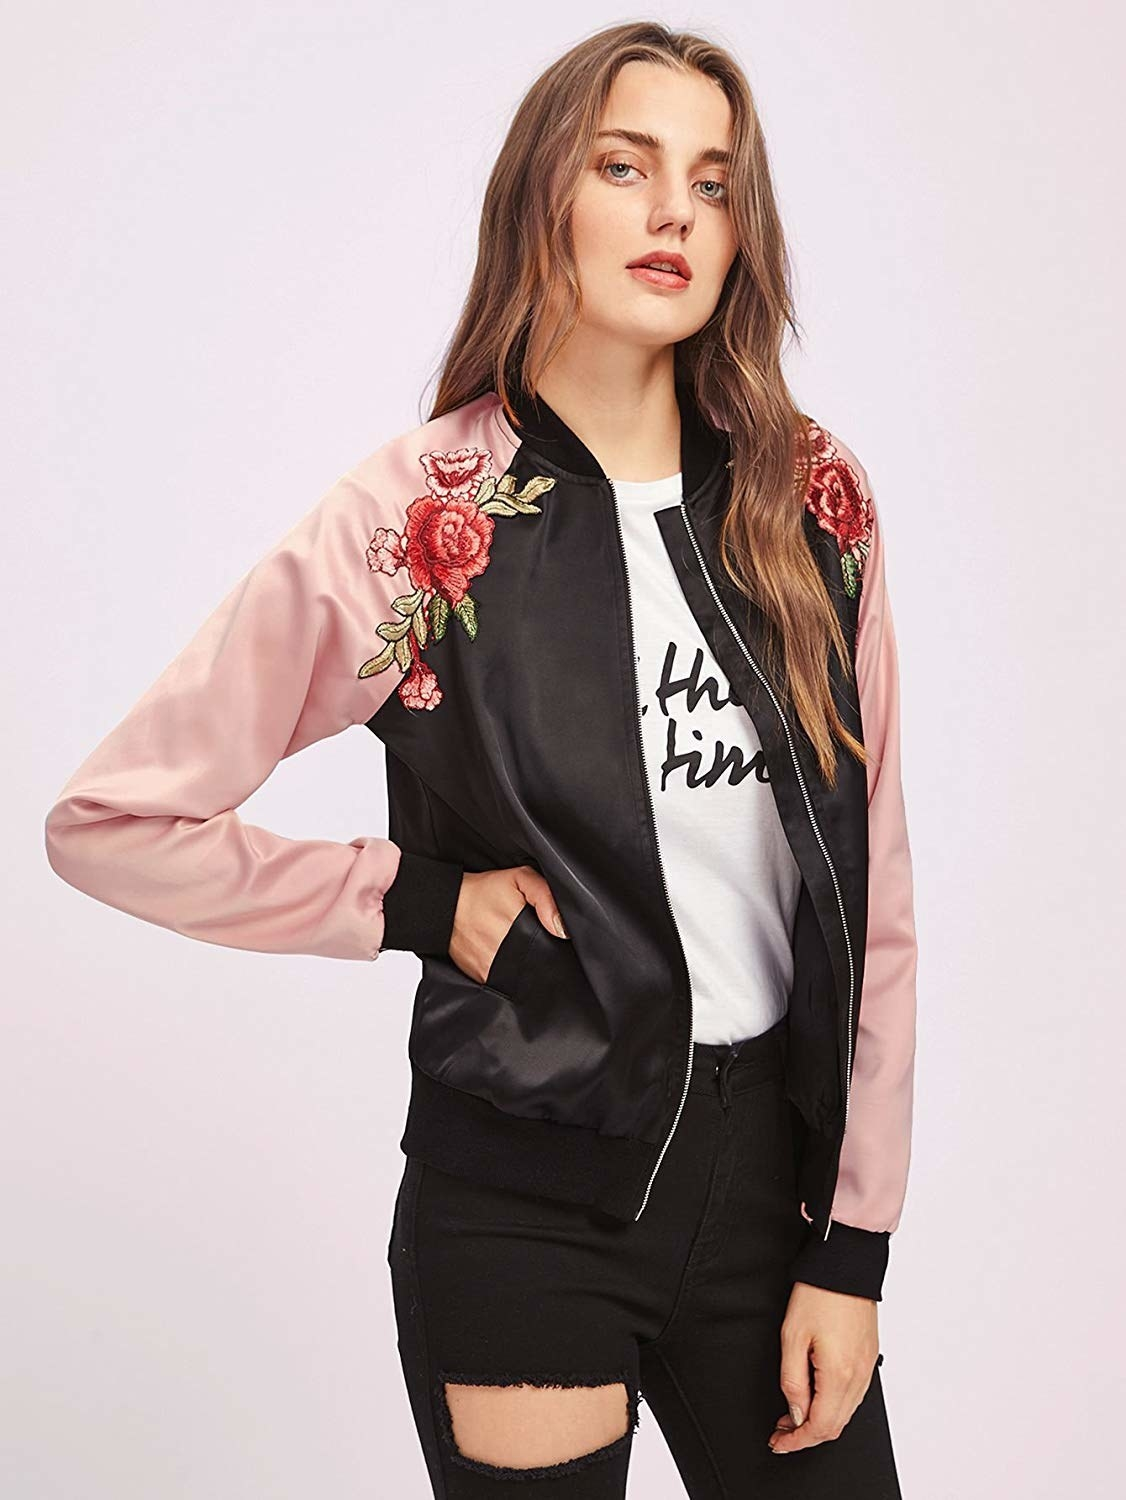 A model wearing the pink and black bomber with rose embroidery